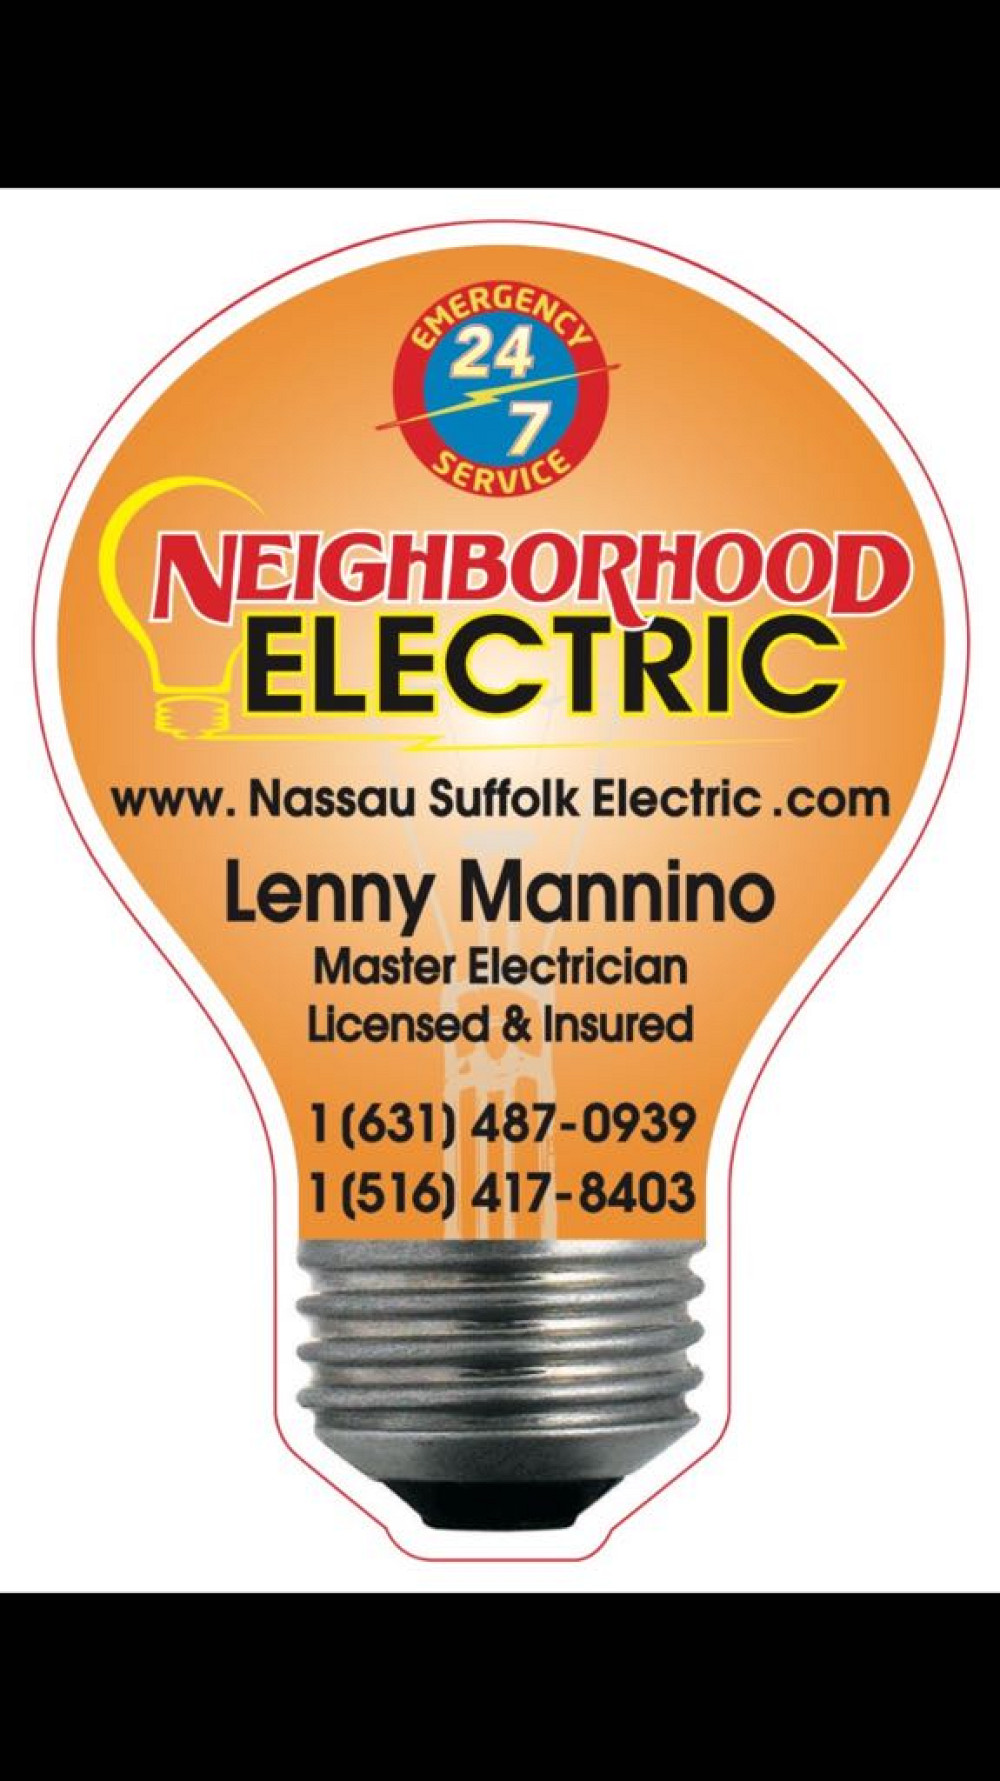 Neighborhood Electric Inc Networx